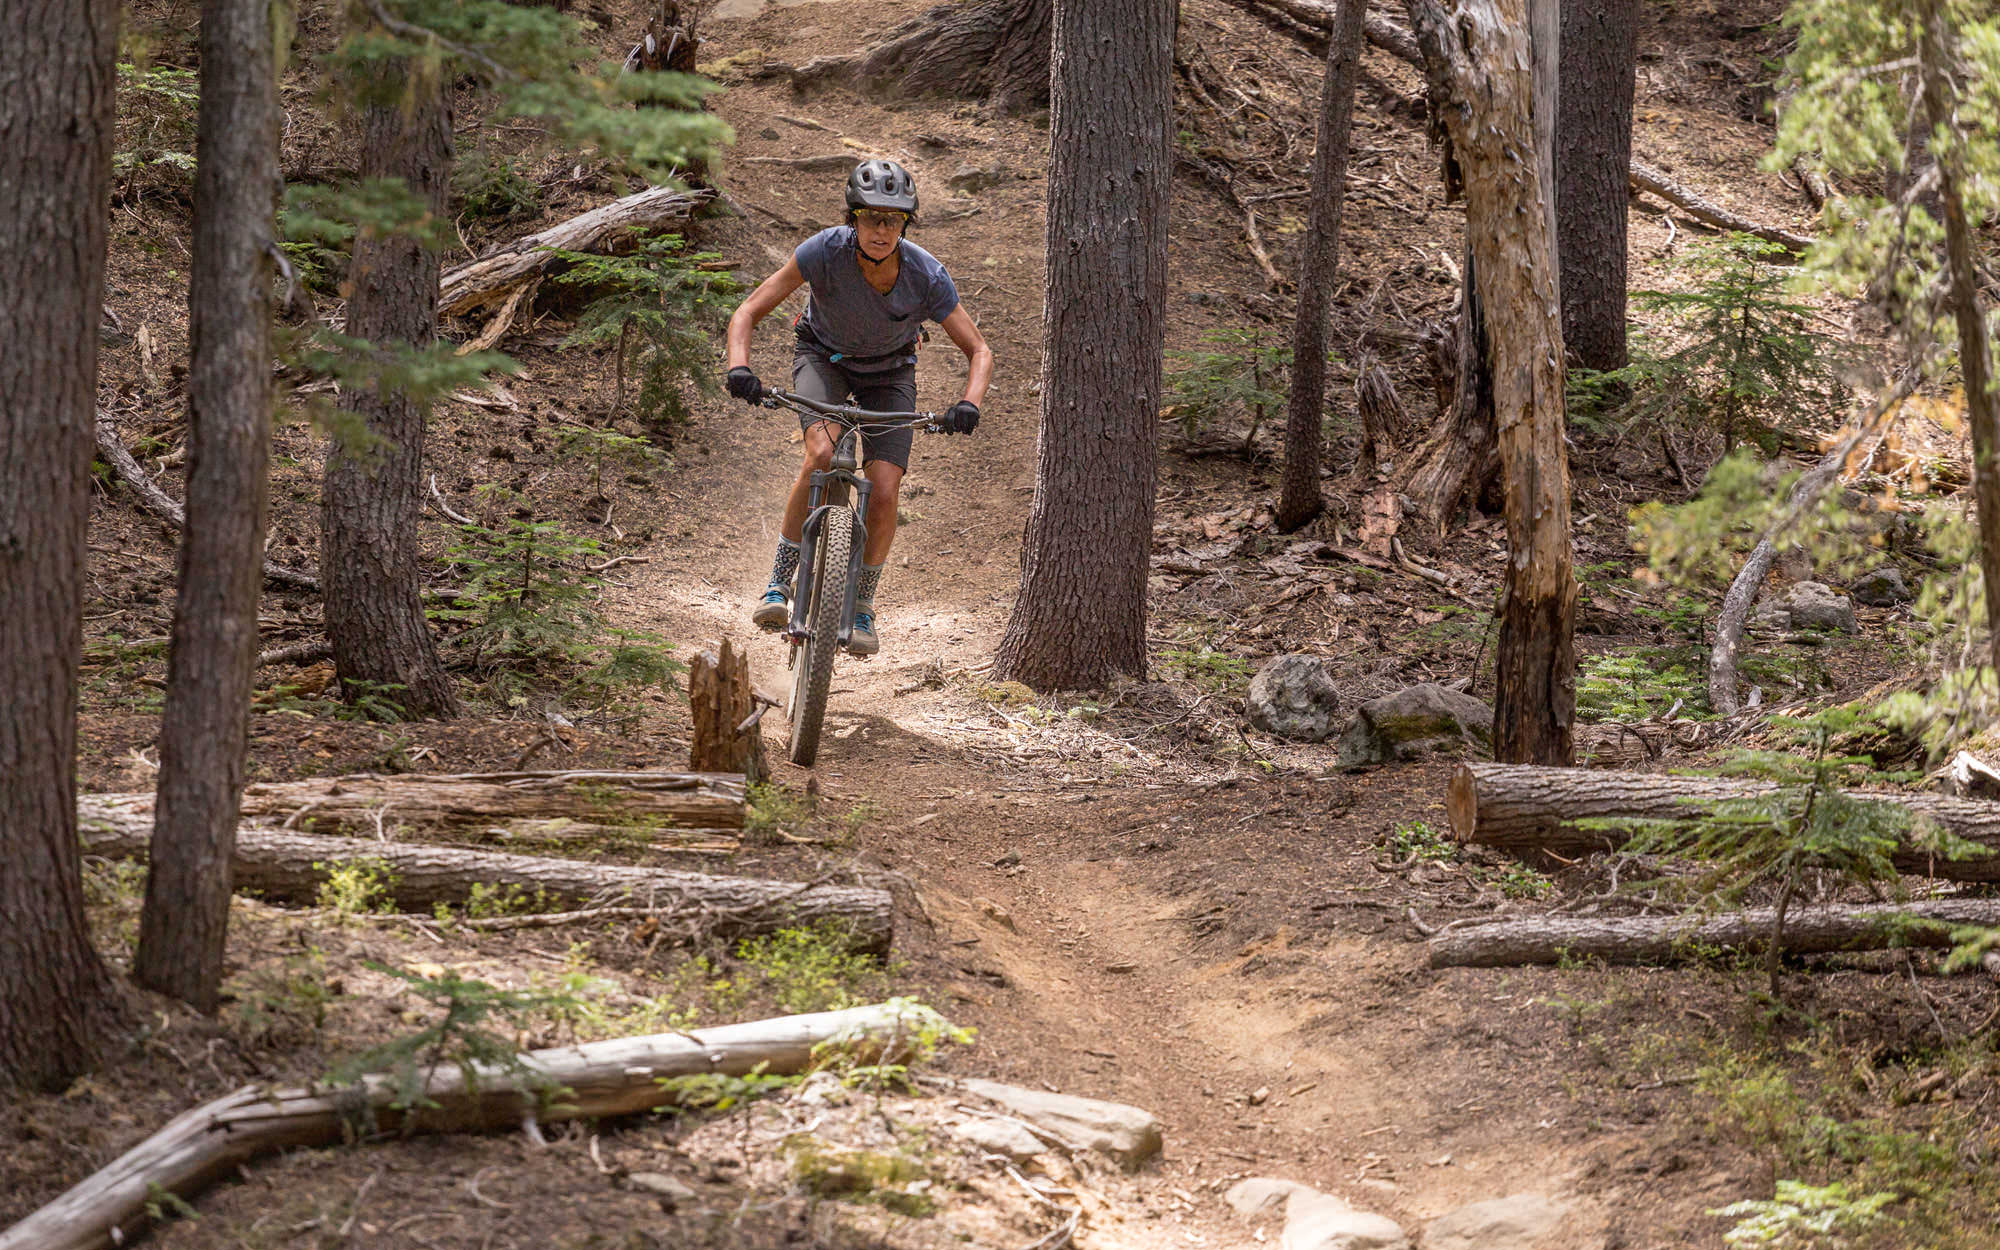 A female mountain biker pedals down a dusty forest trail.